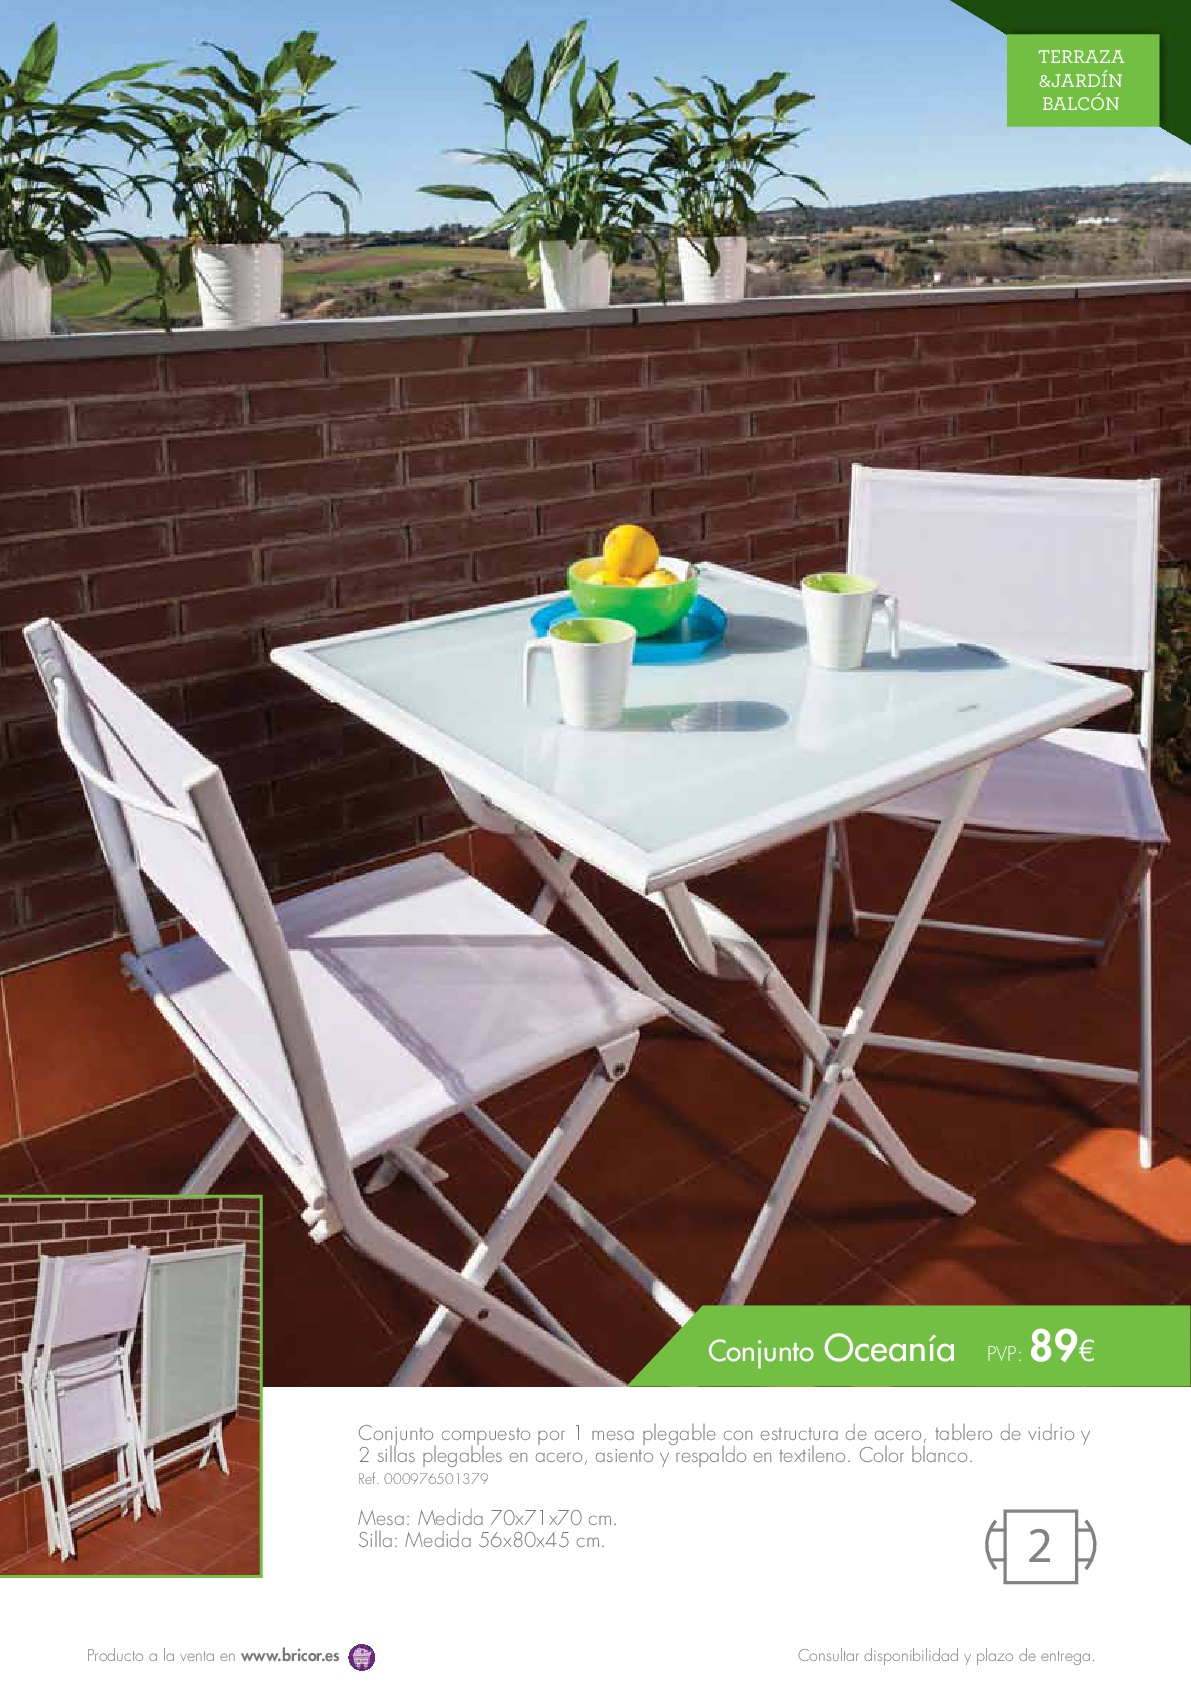 Bricor muebles jardin 20169 revista muebles mobiliario for Muebles bricor